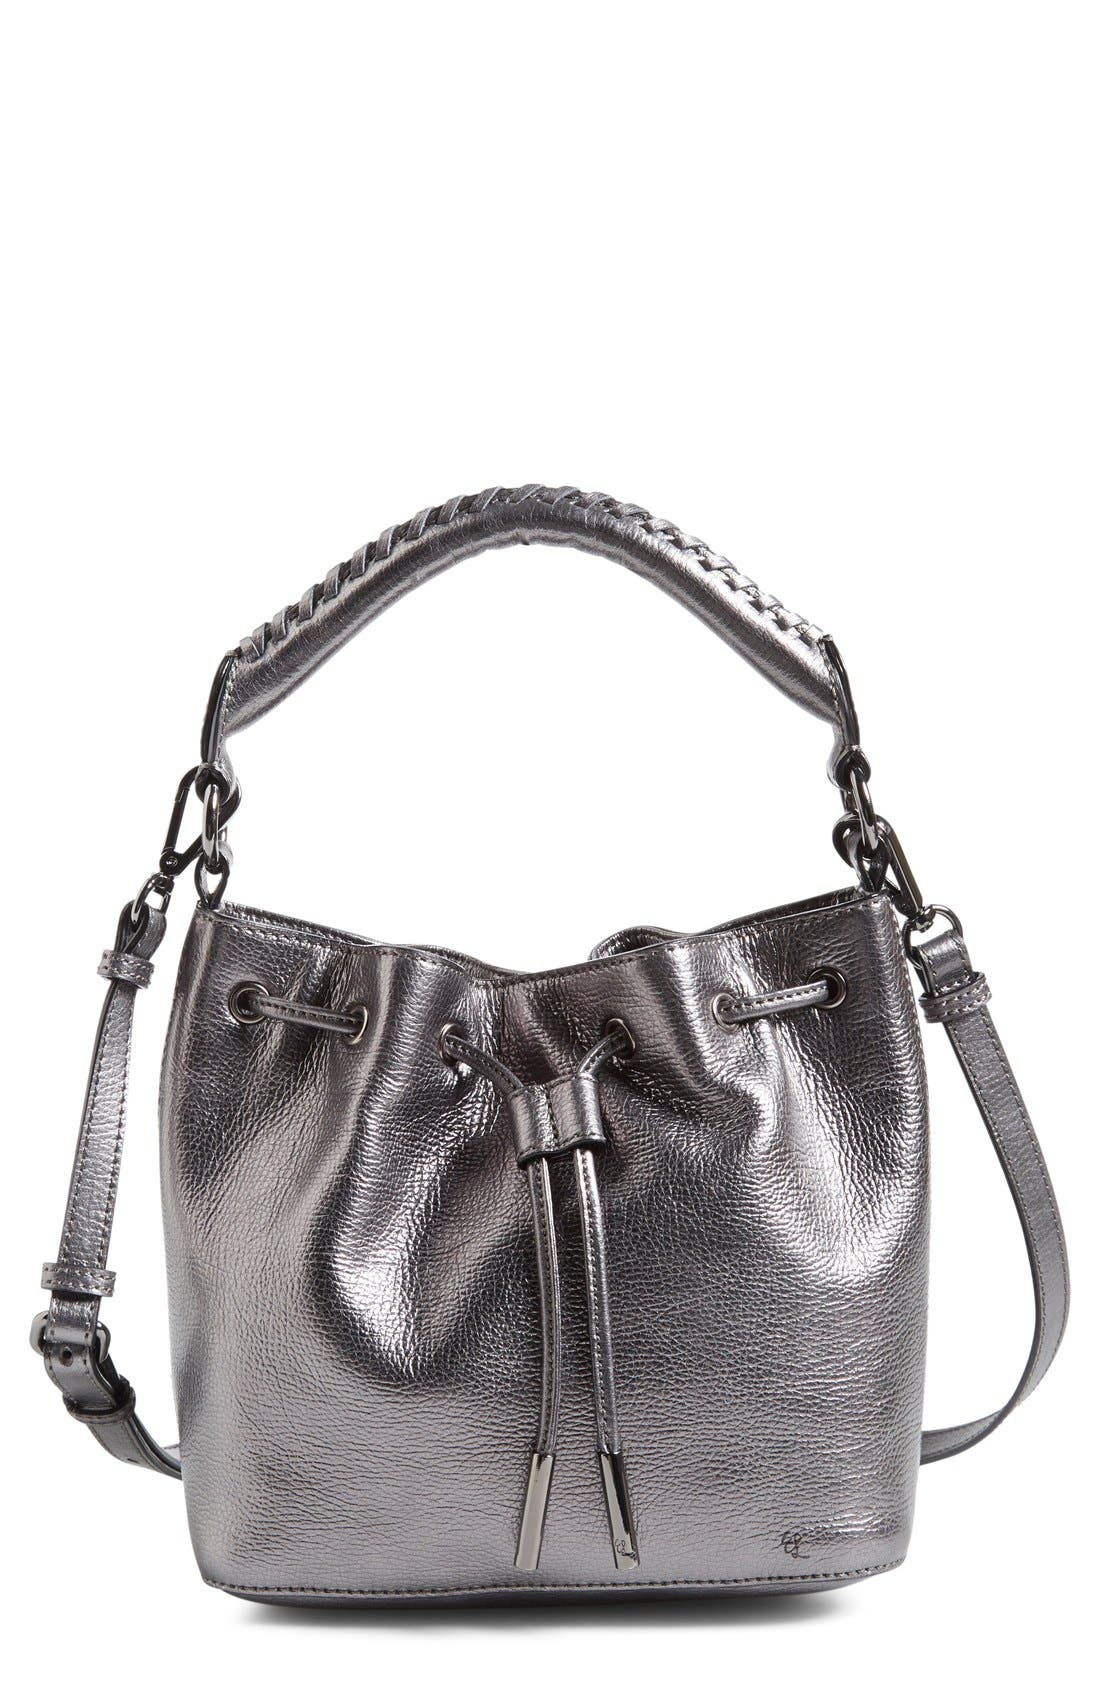 Main Image - Elliott Lucca 'Gigi Bon Bon' Leather Bucket Bag